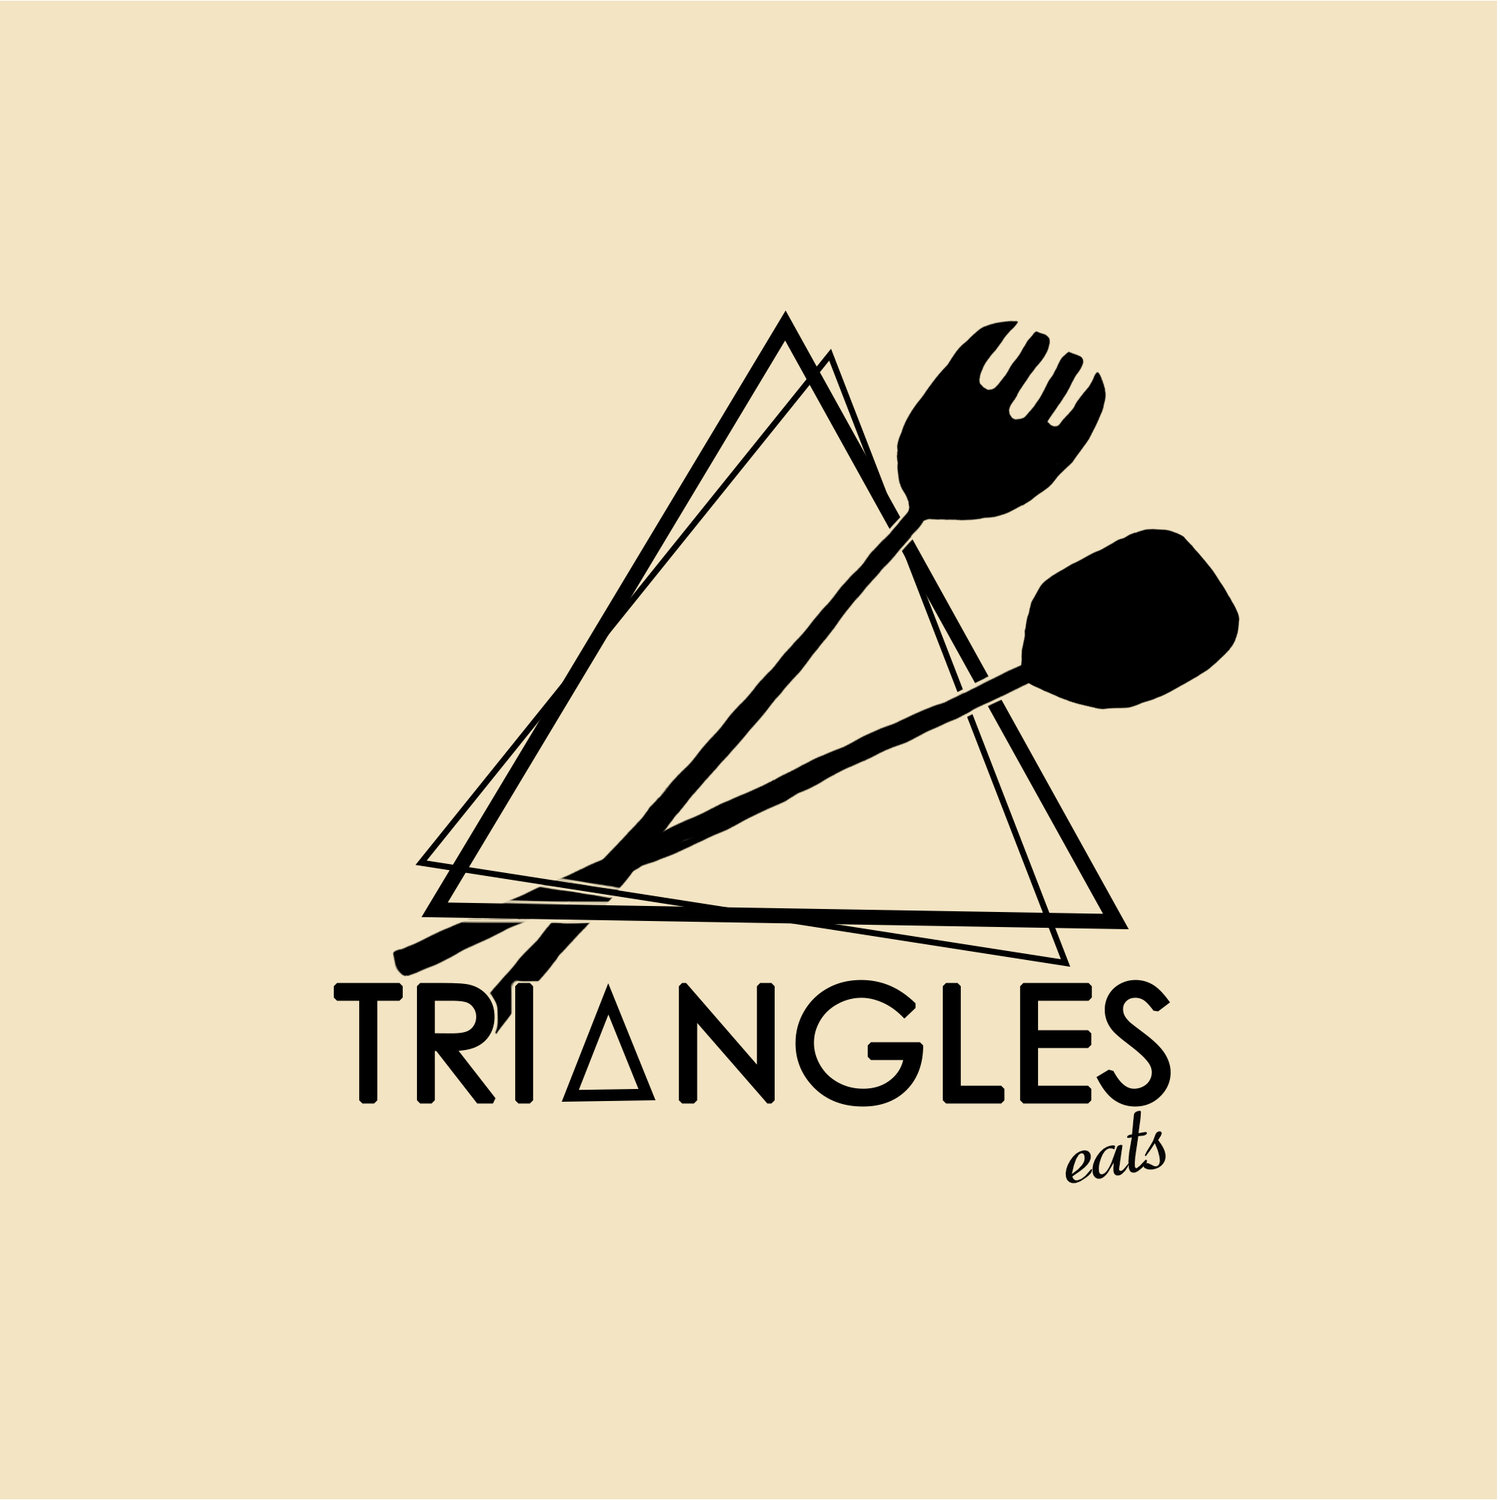 TRIANGLES EATS